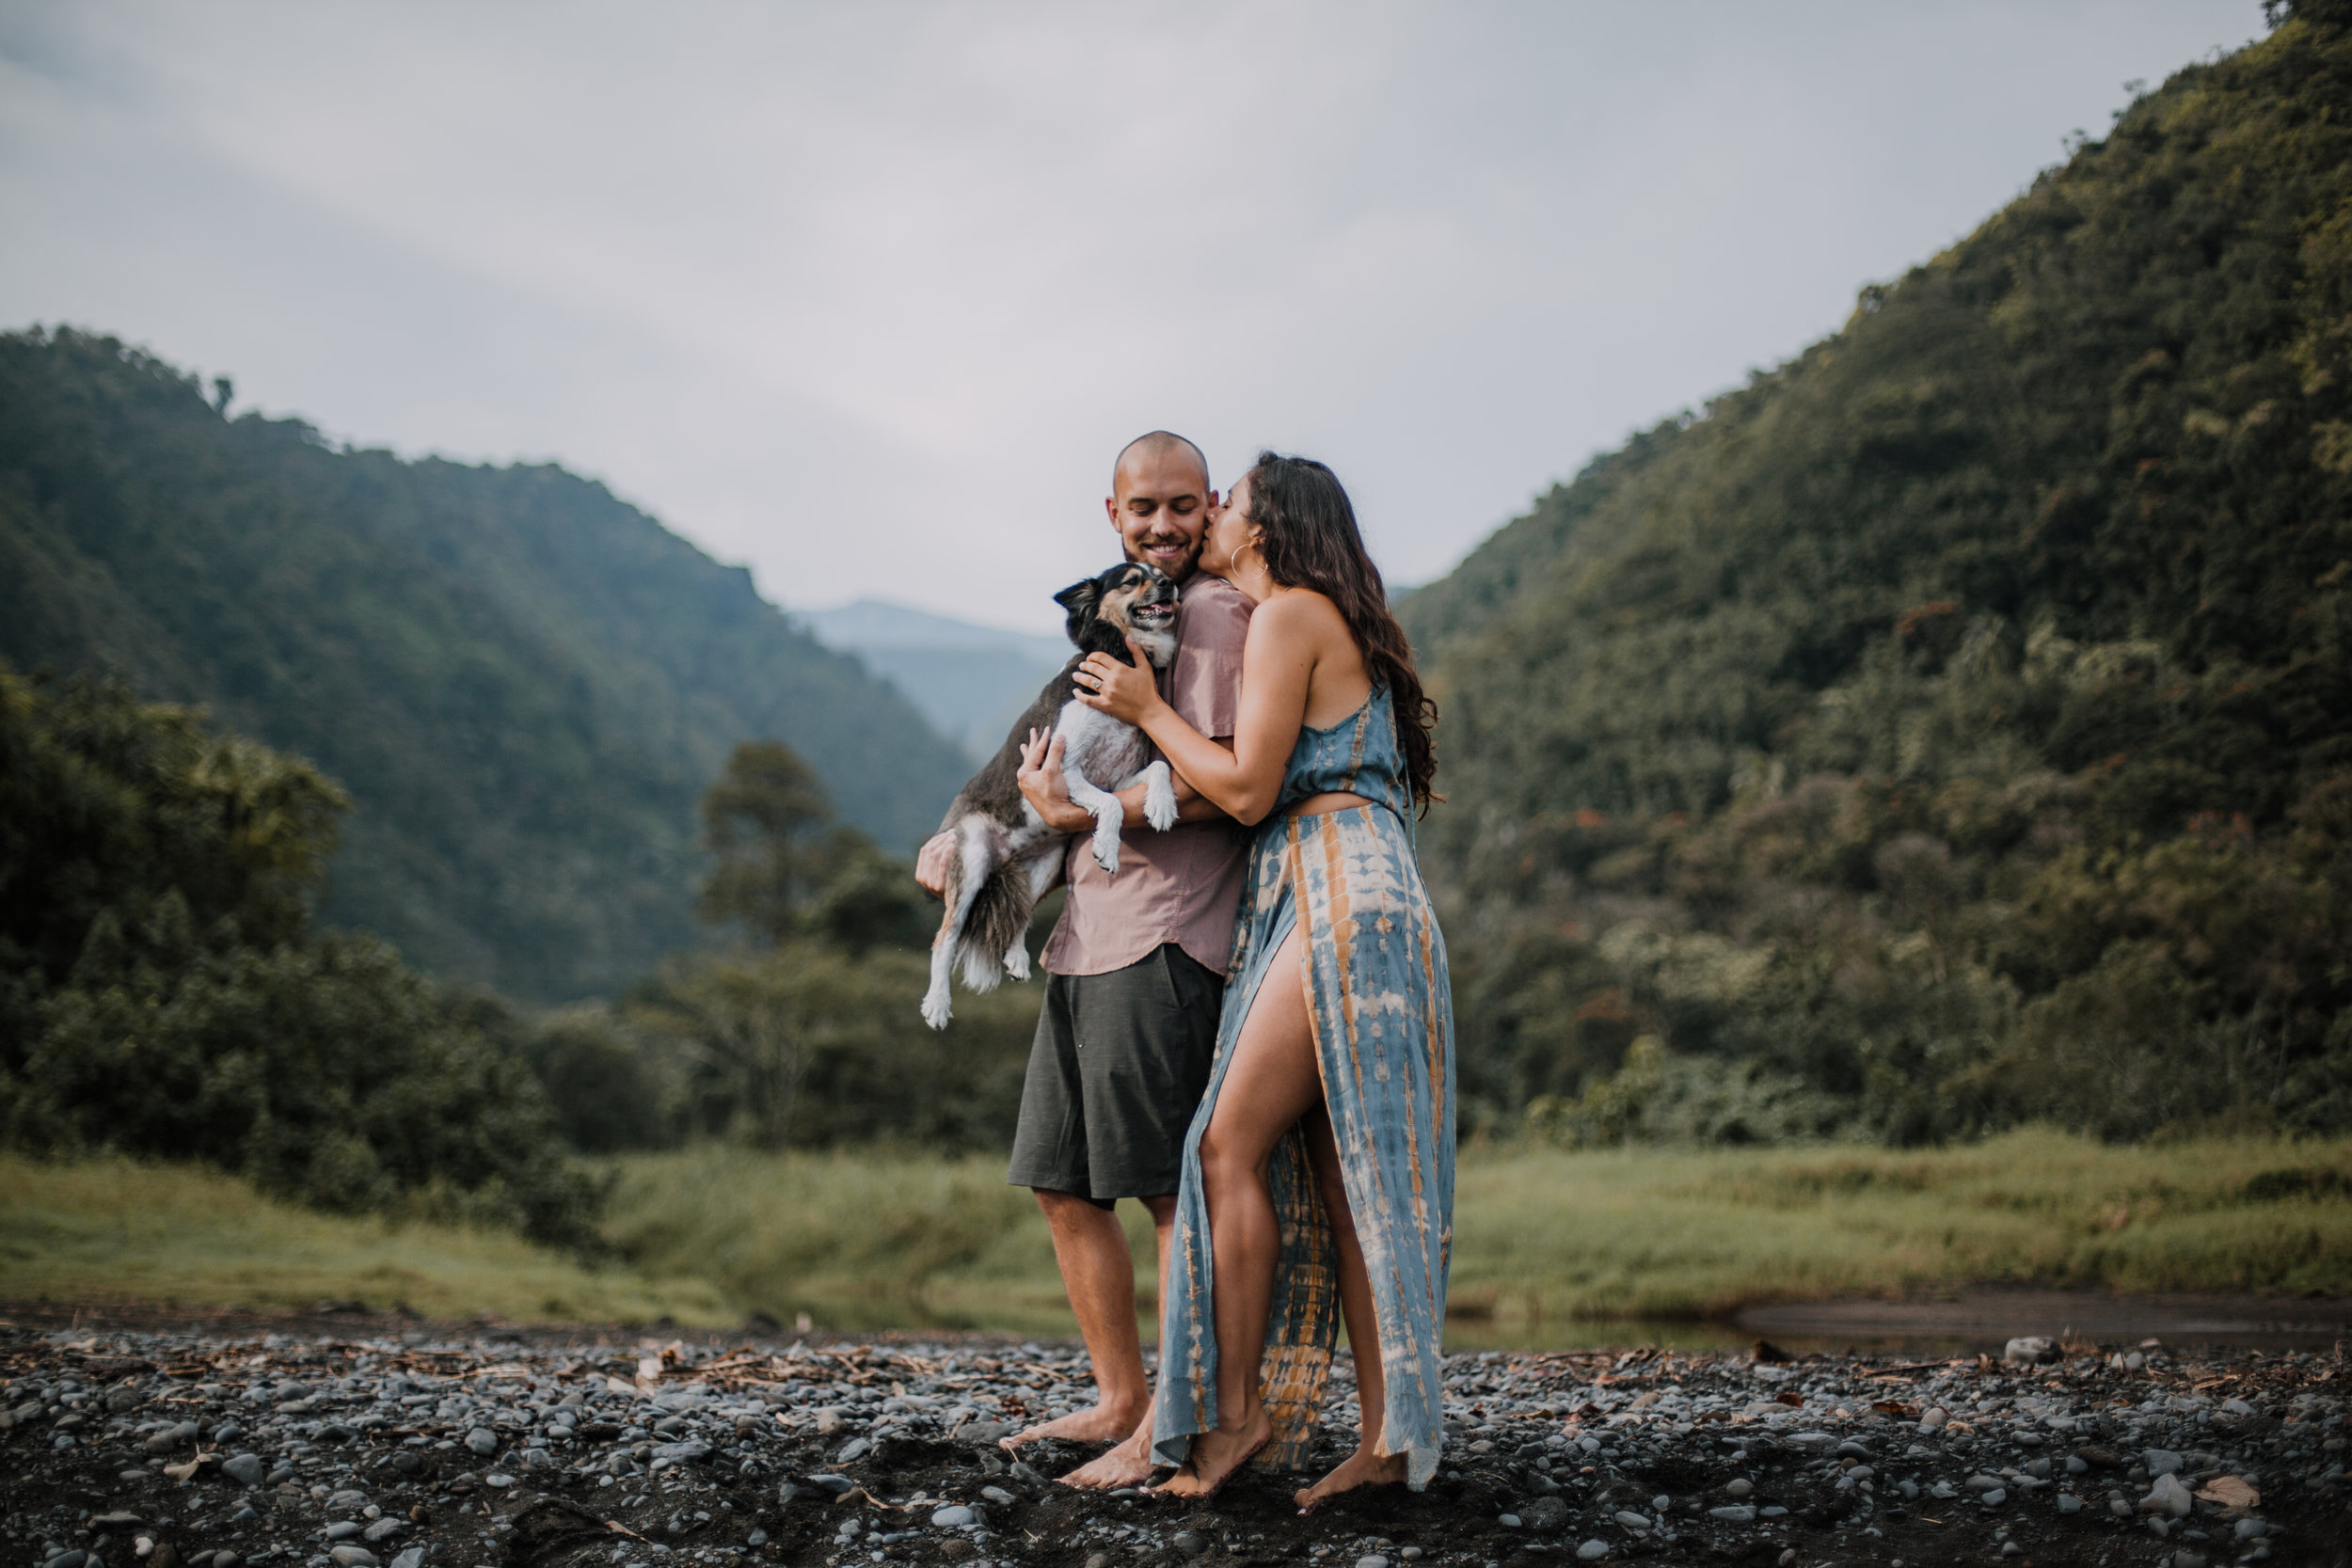 maui puppy, island hiking, hawaii waterfall, road to hana, maui waterfall, hawaii wedding photographer, hawaii elopement photographer, maui wedding, maui engagements, maui elopement